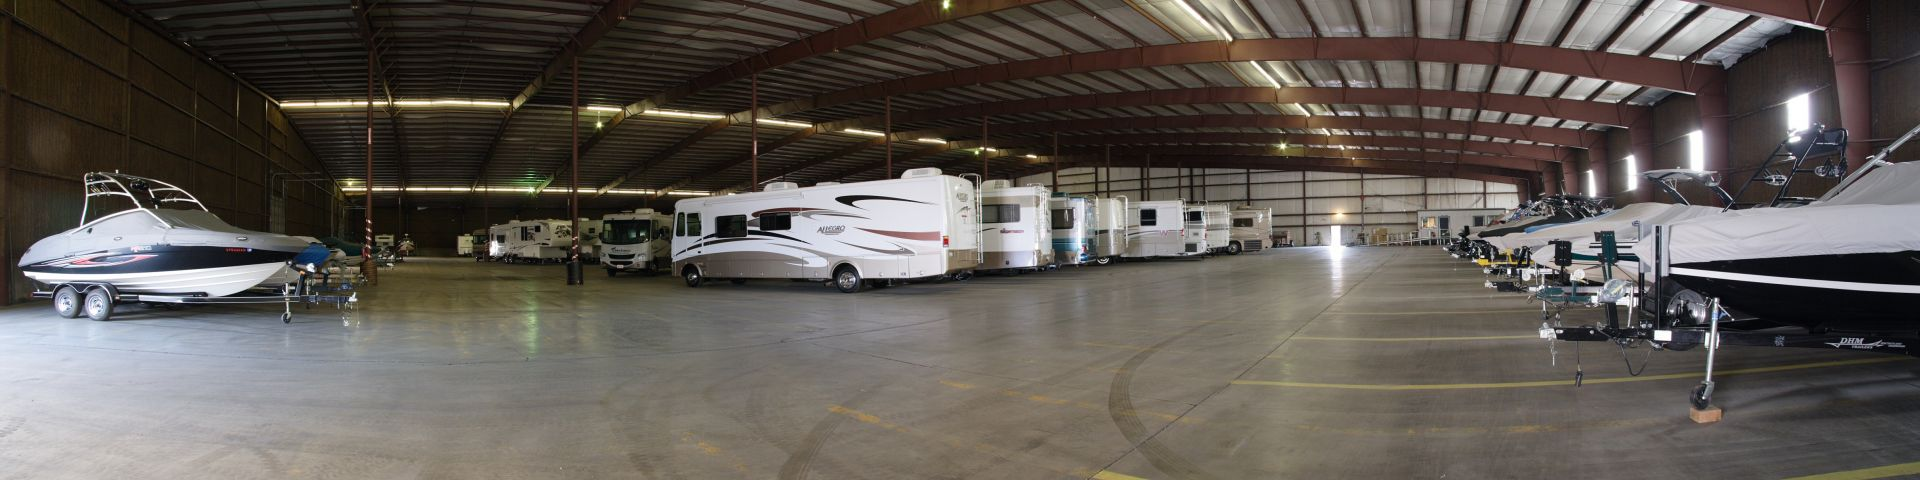 Photo Gallery Rv And Boat Storage Indoor Rv And Boat